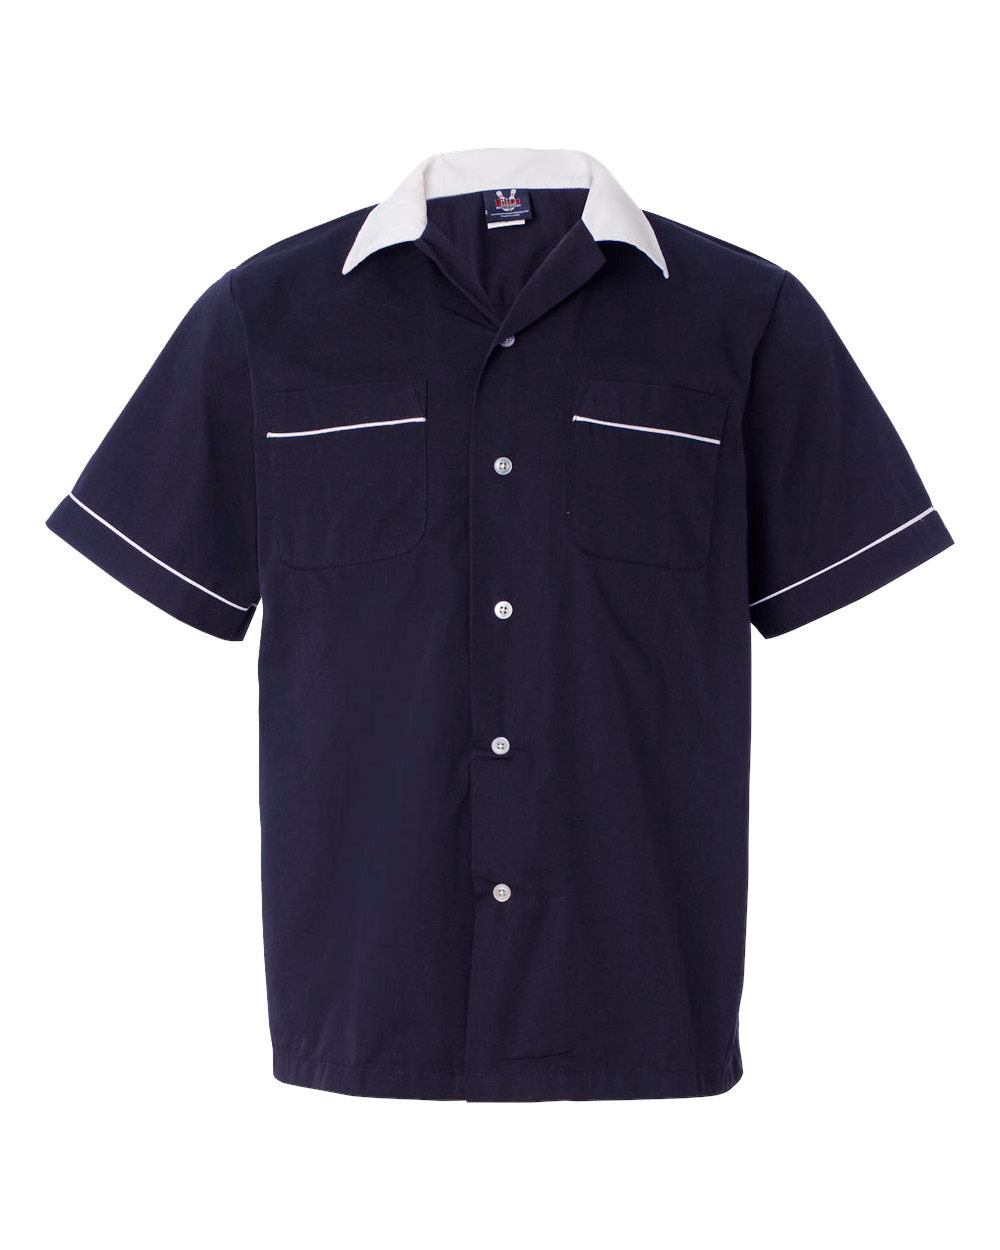 1950s Mens Shirts | Retro Bowling Shirts, Vintage Hawaiian Shirts Classic Bowler 2.0 Bowling Shirt - Navy  White $39.95 AT vintagedancer.com